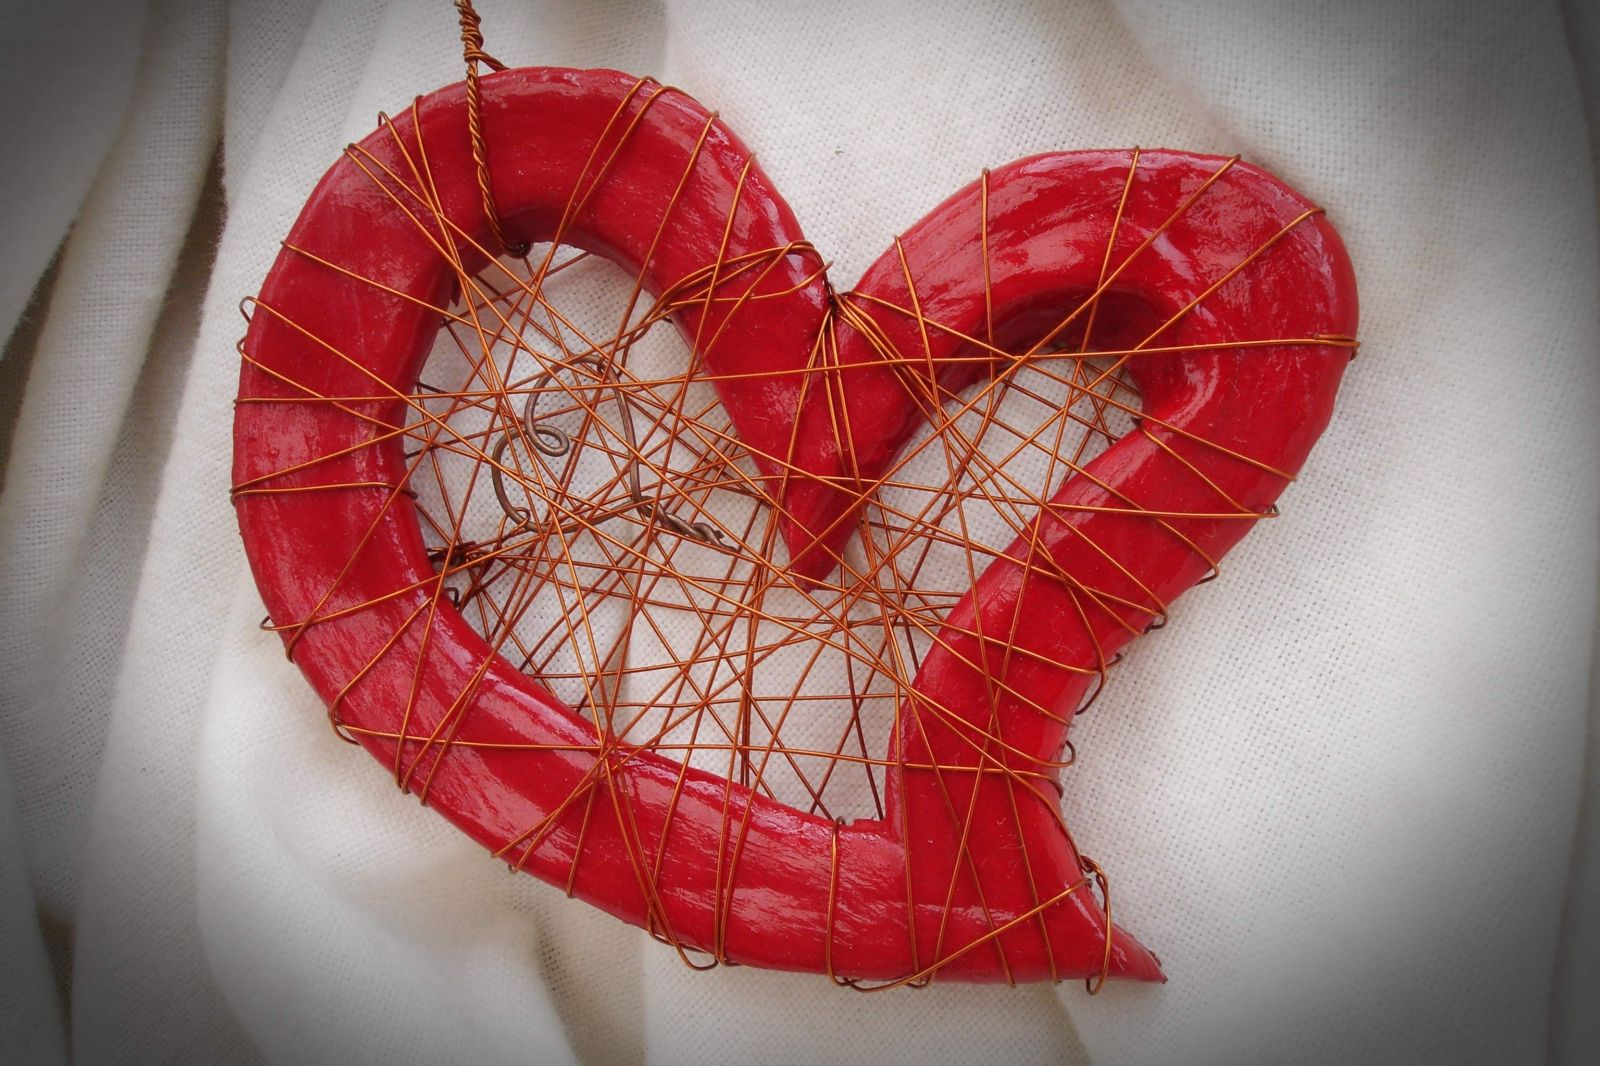 Copper Clay Heart To Heart Sculpture